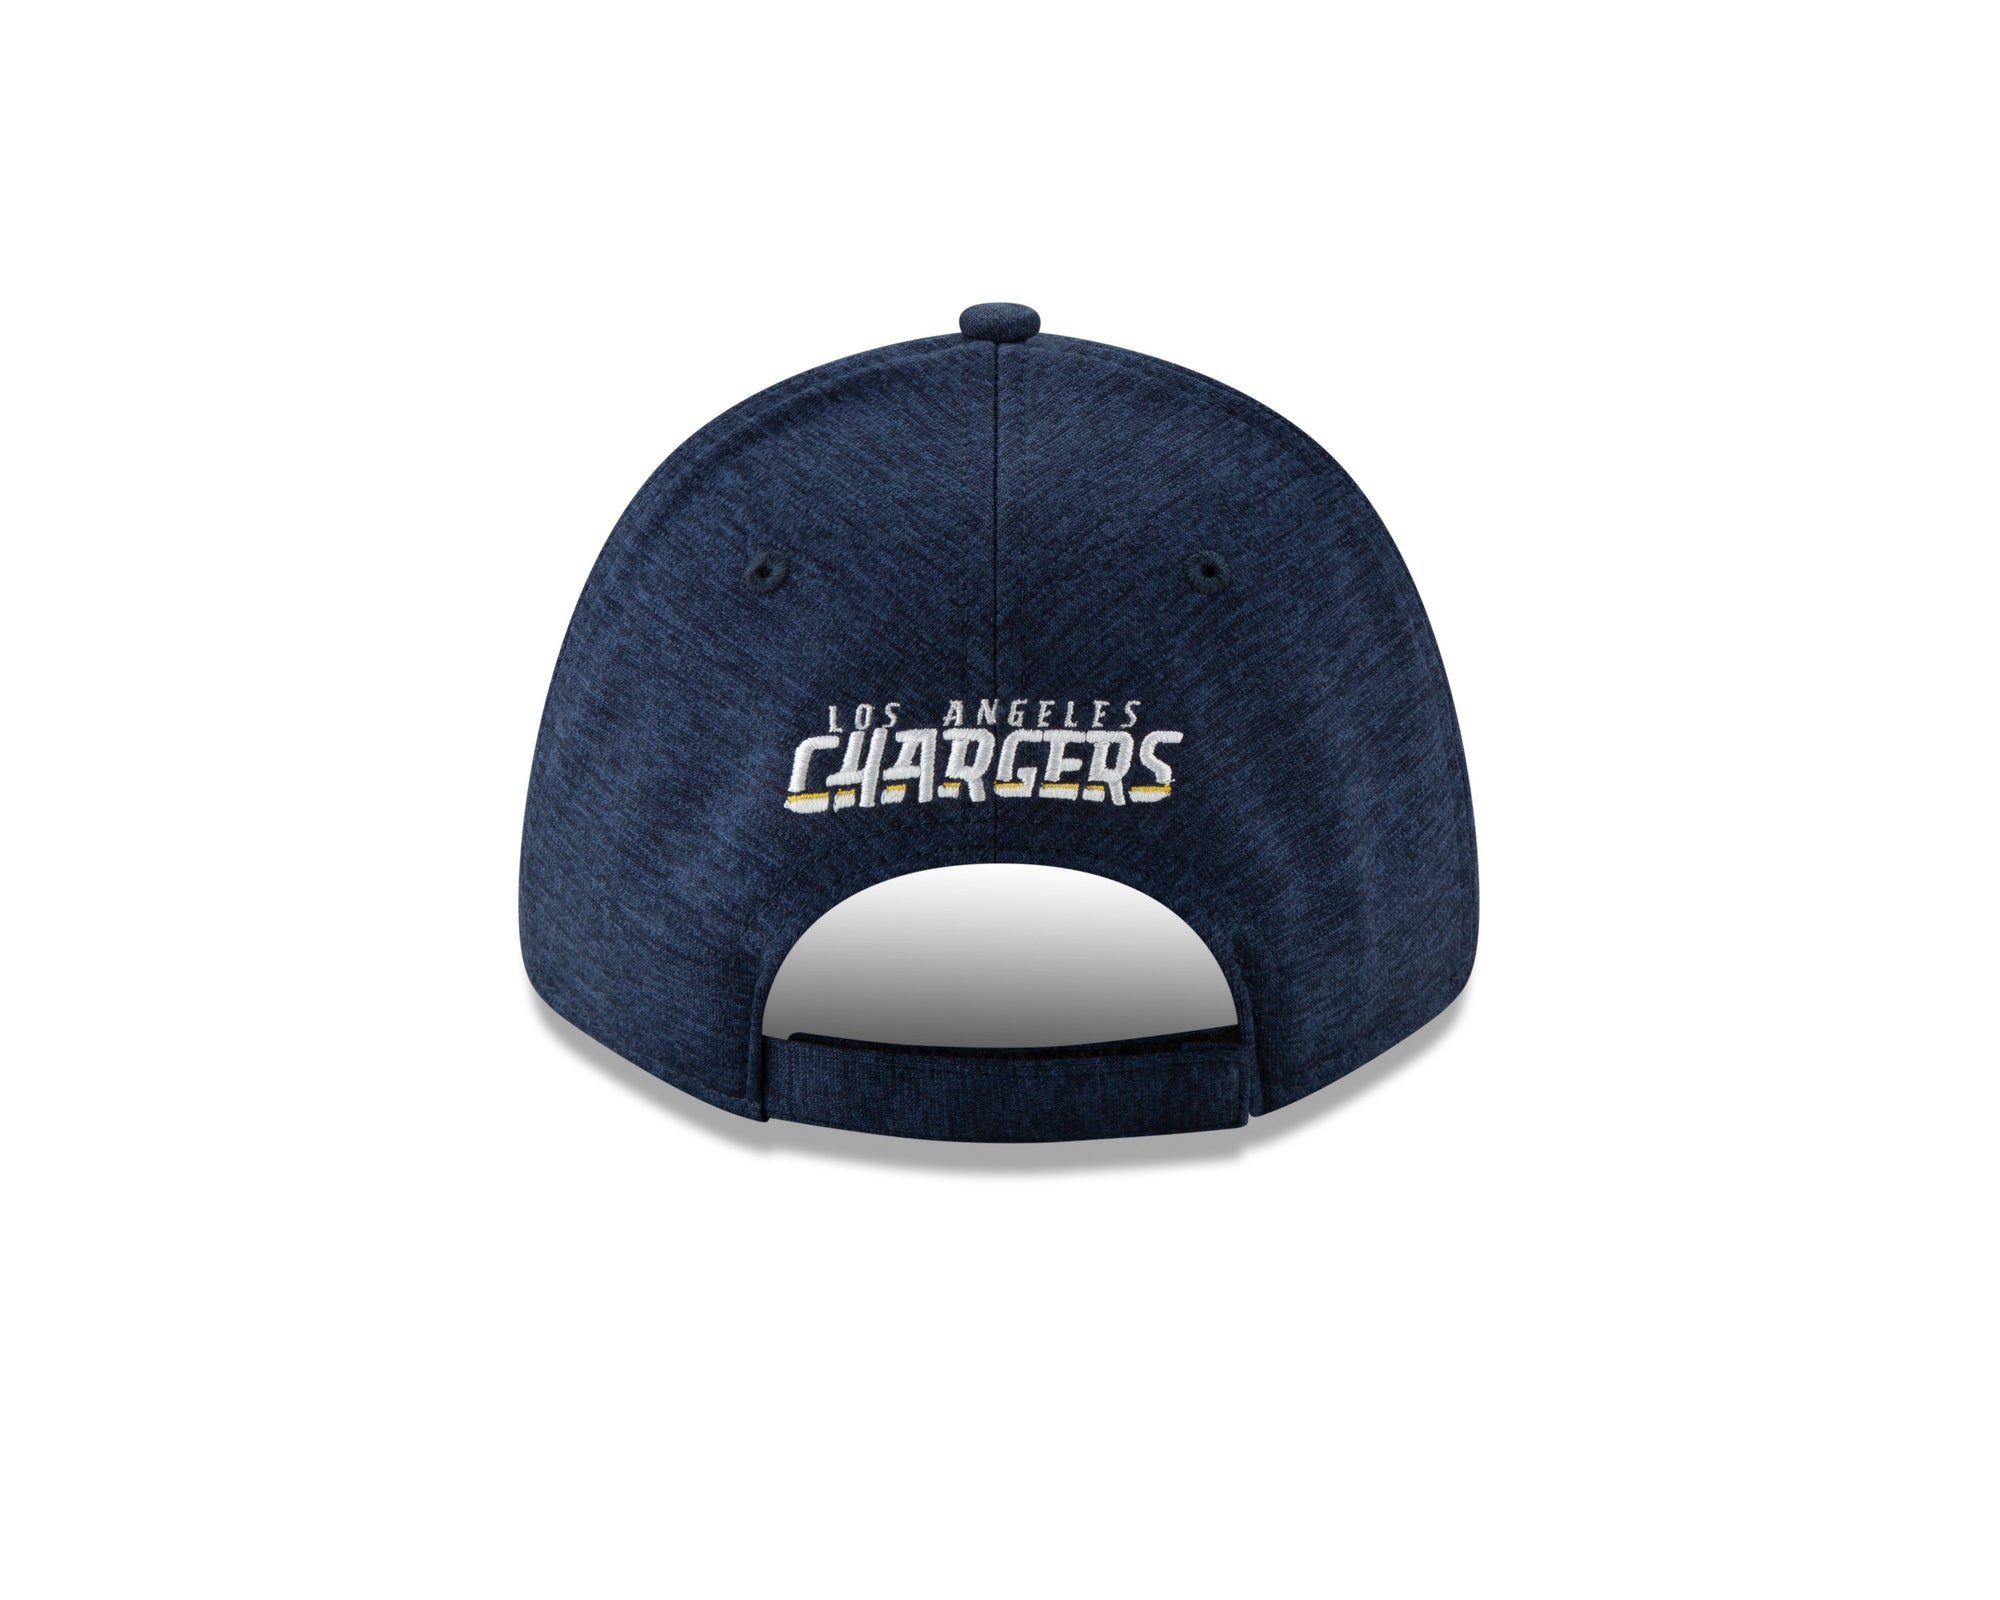 NFL Los Angeles Chargers New Era Visor Trim 9FORTY - Navy